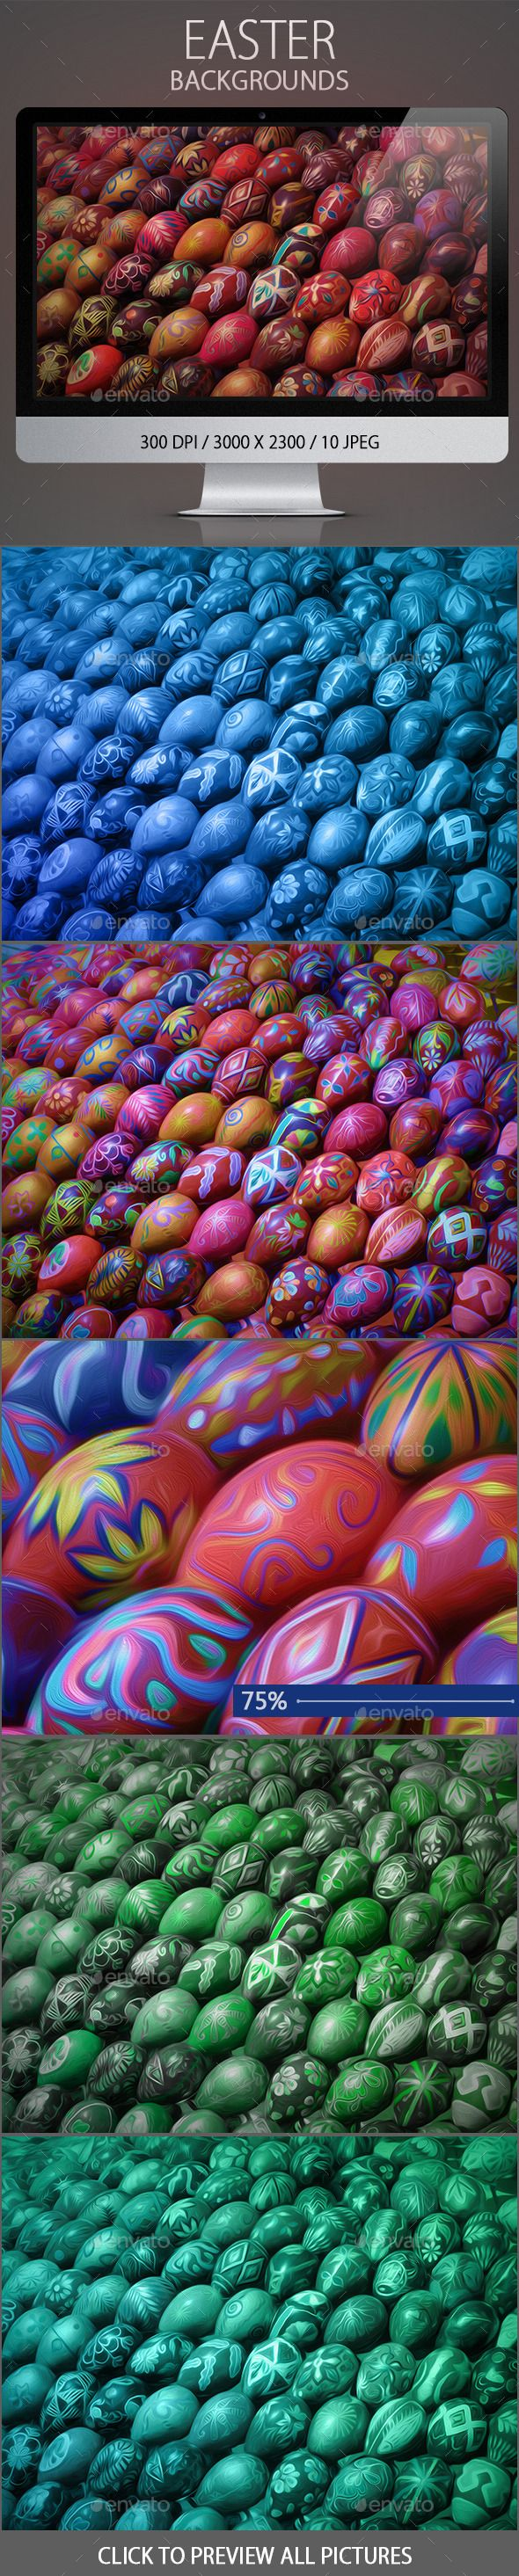 Easter #Backgrounds - Nature Backgrounds Download here: https://graphicriver.net/item/easter-backgrounds/10643931?ref=alena994